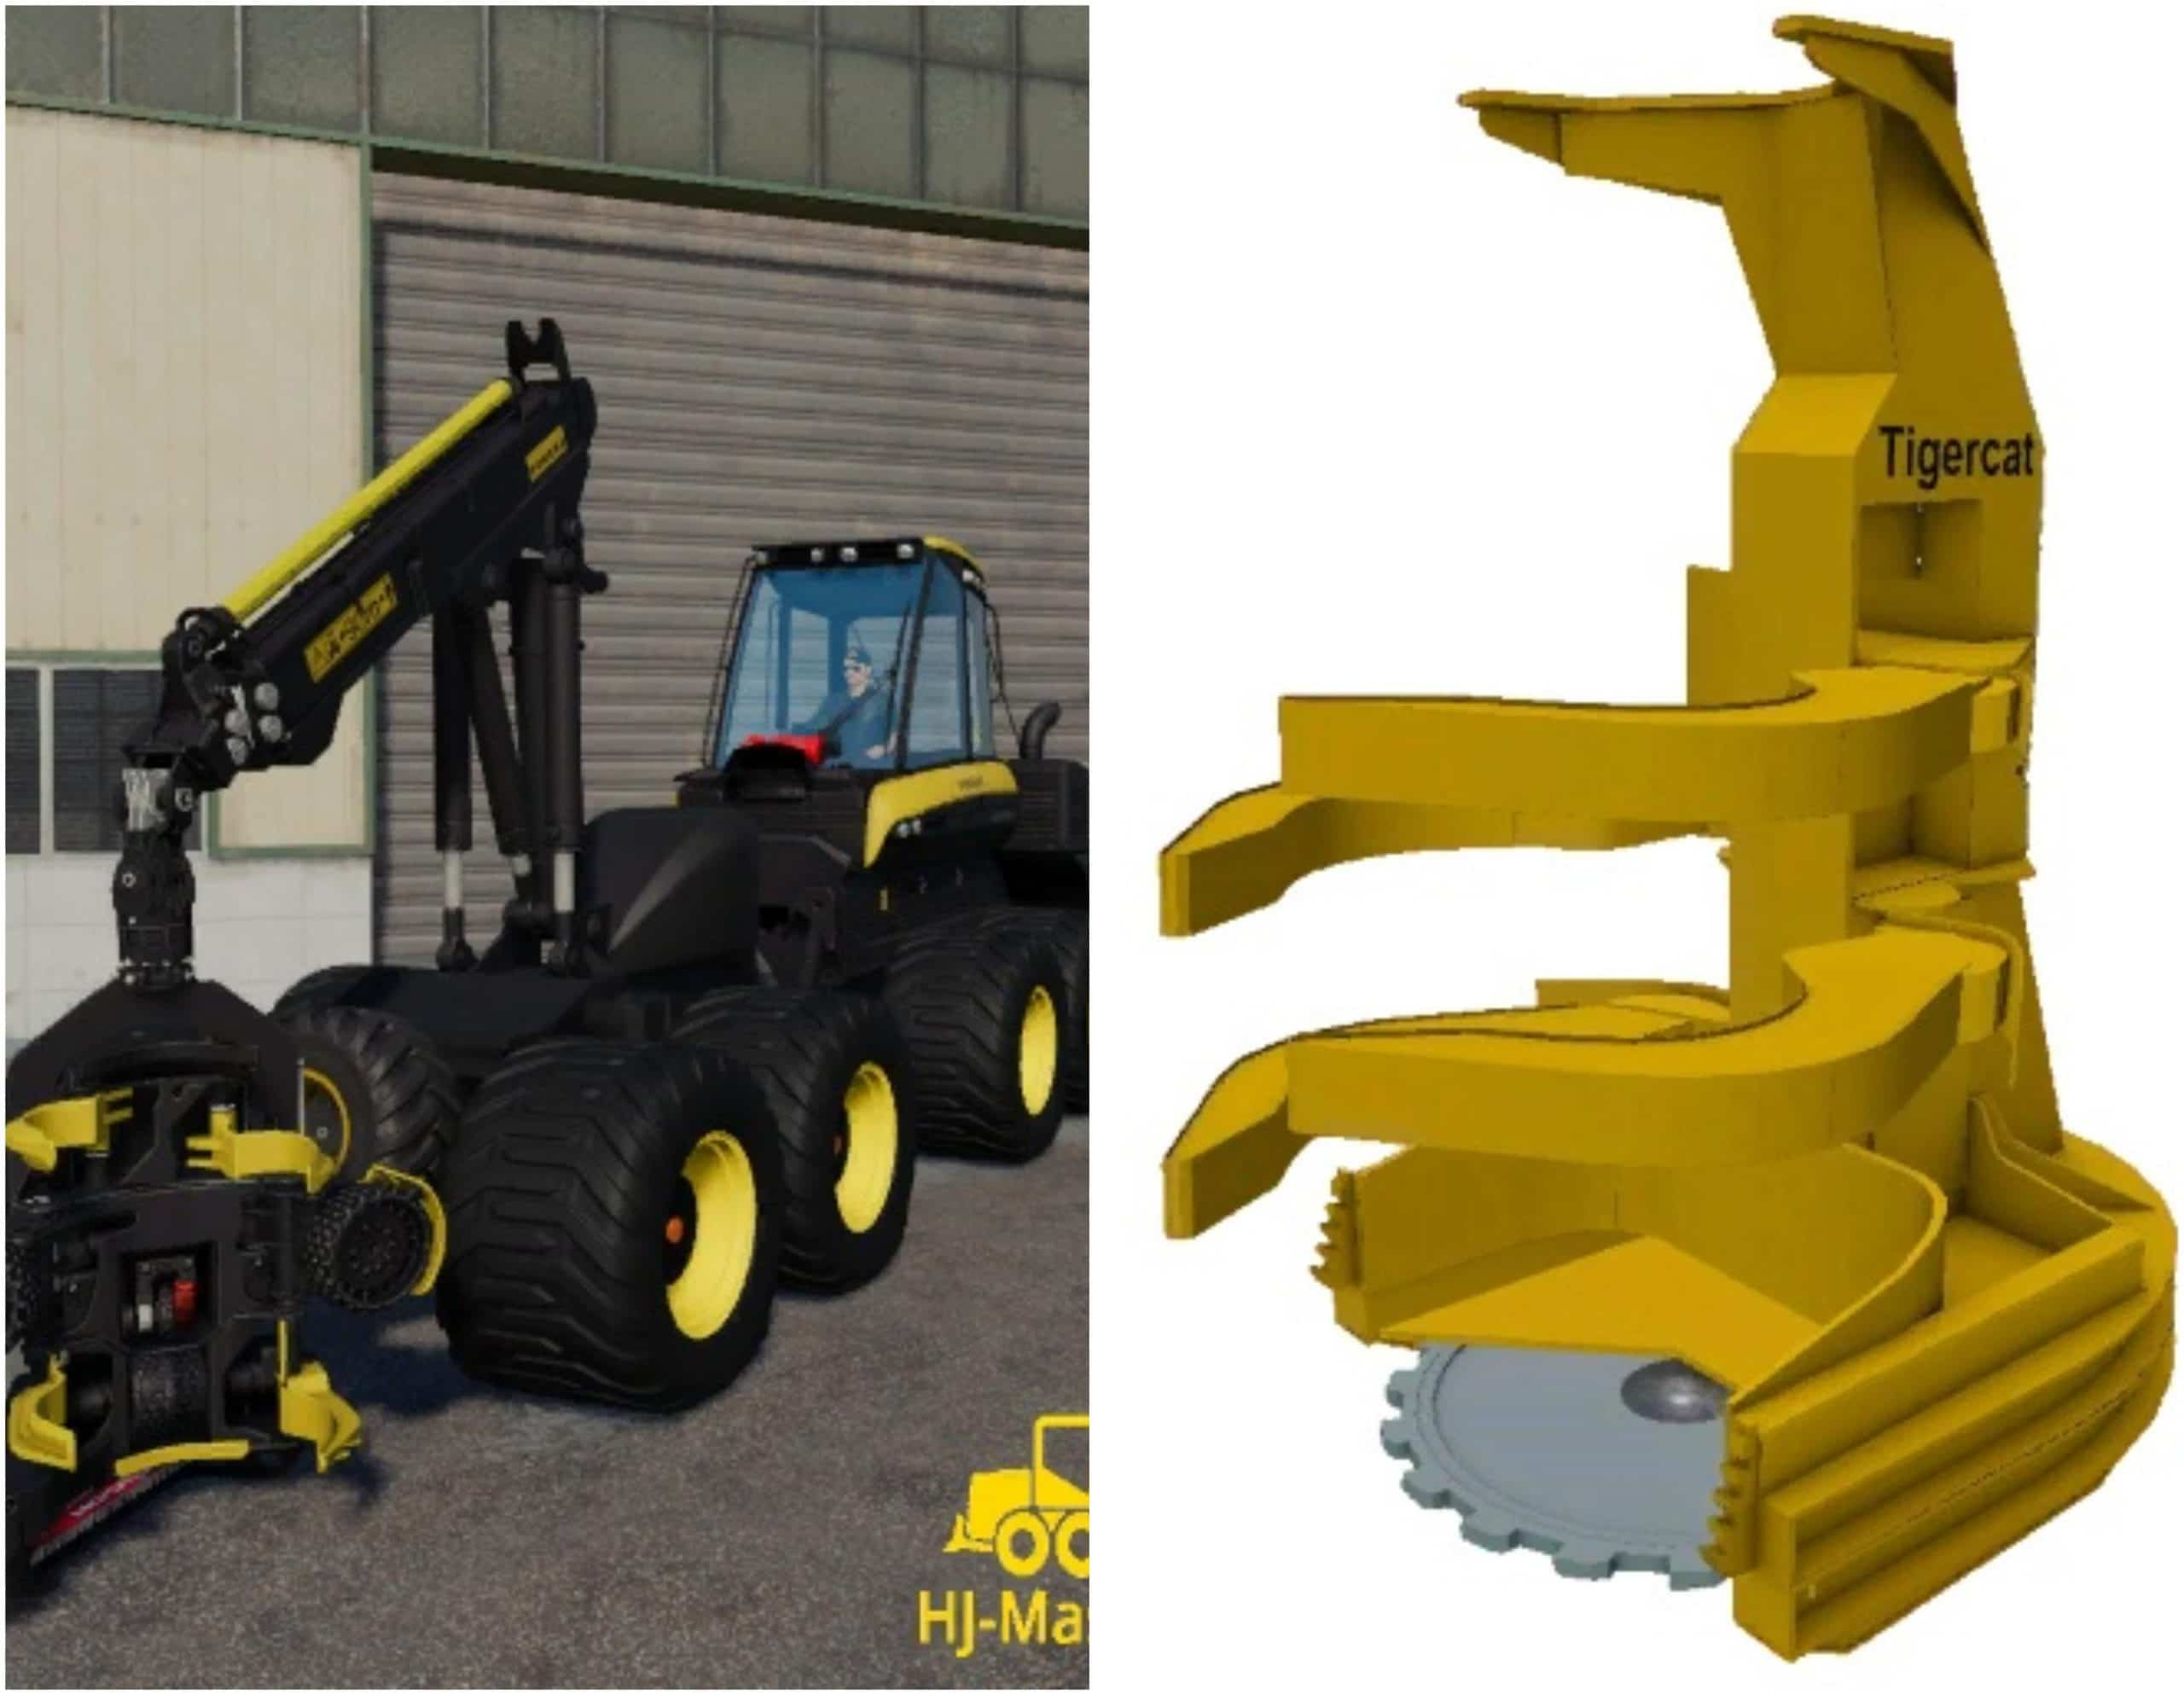 PONSSE BEAR 8W and FELLER BUNCHER - FS2019 Mods - Ai Cave